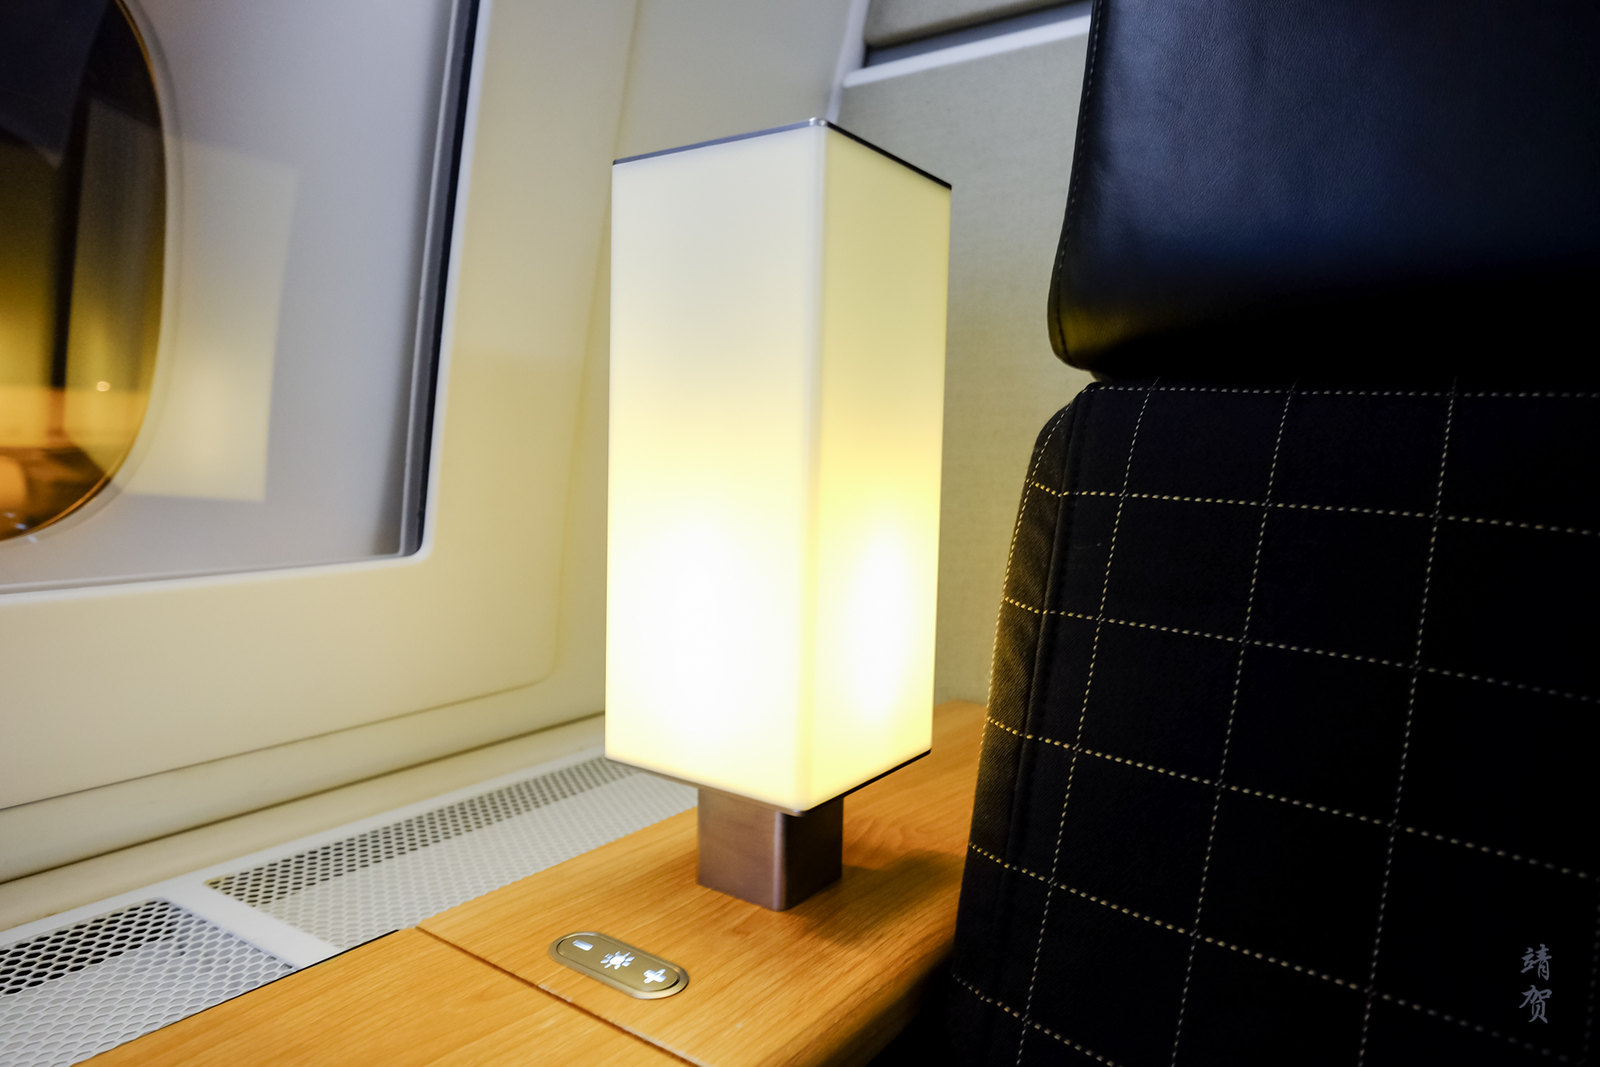 Light beside the seat